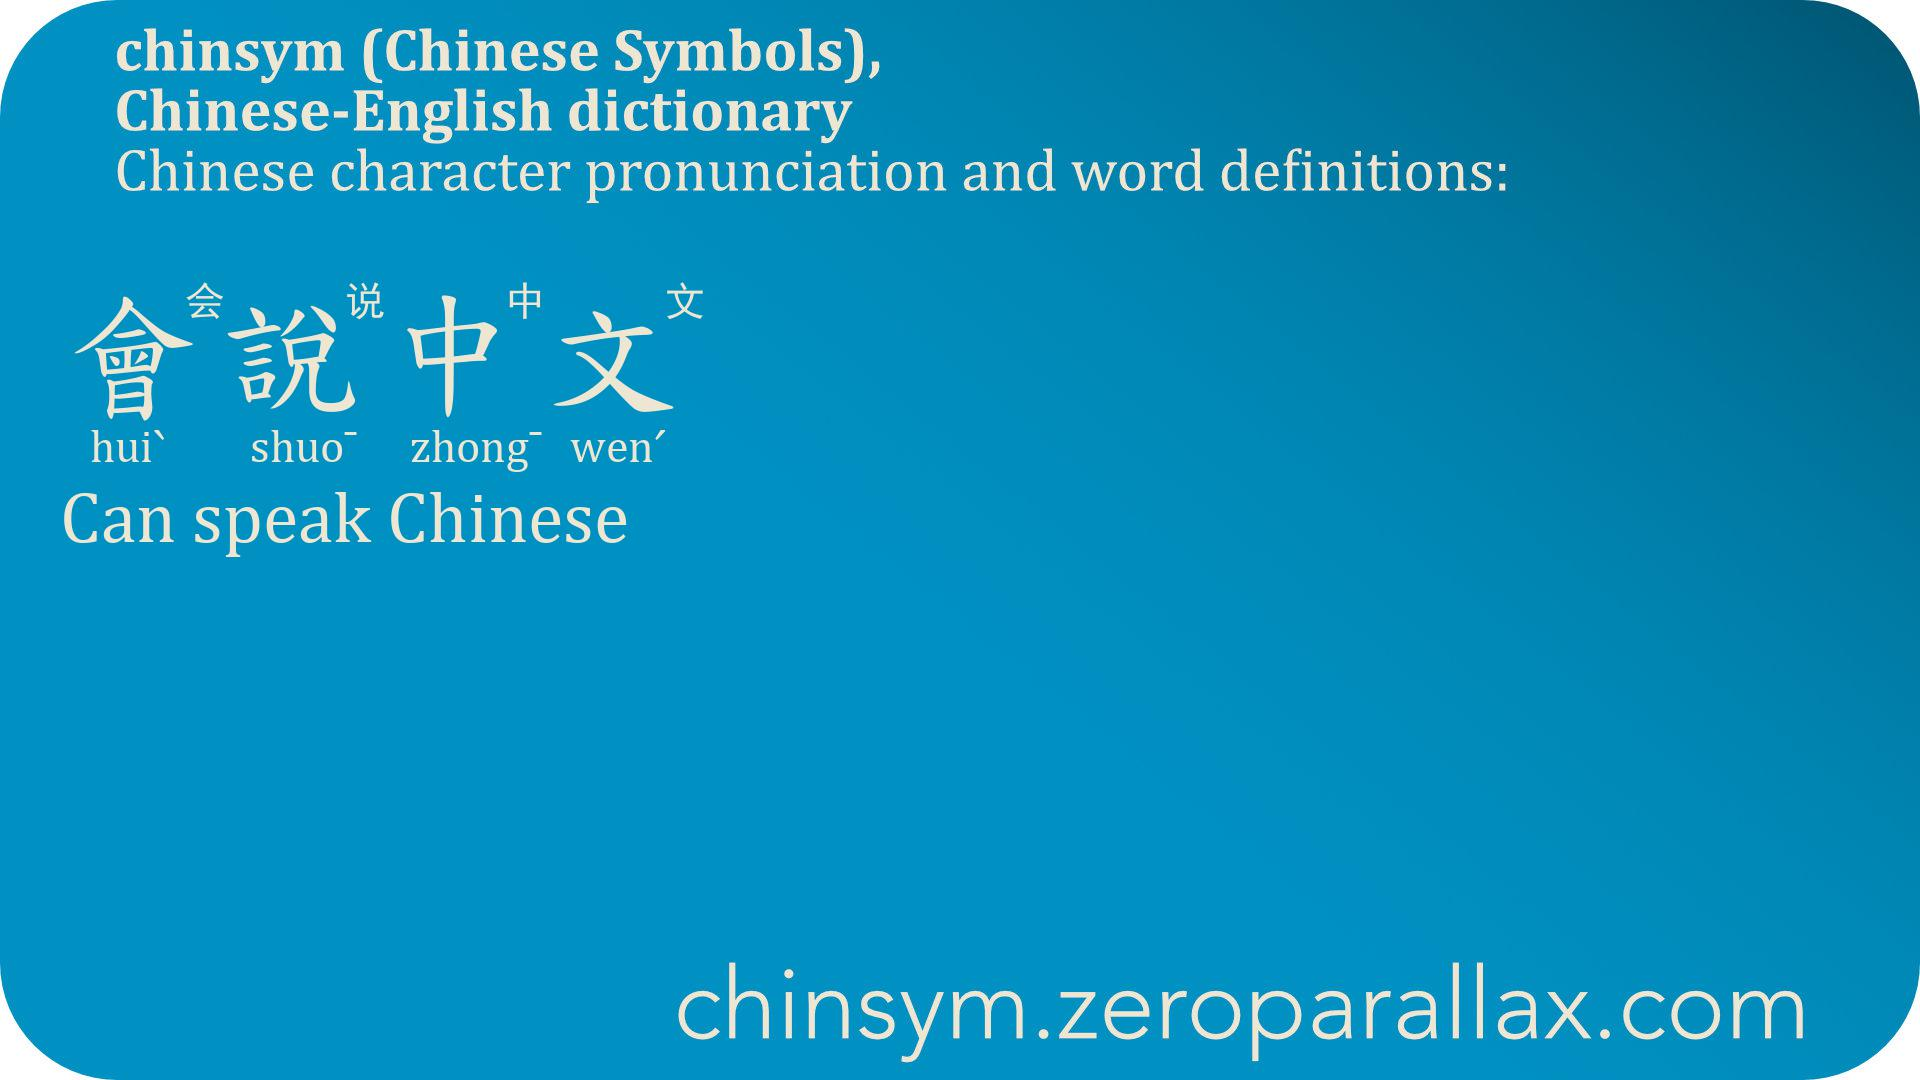 會說中文  (huiˋ shuo¯ zhong¯ wenˊ) 会说中文 : Can speak Chinese. chinsym.zeroparallax.com